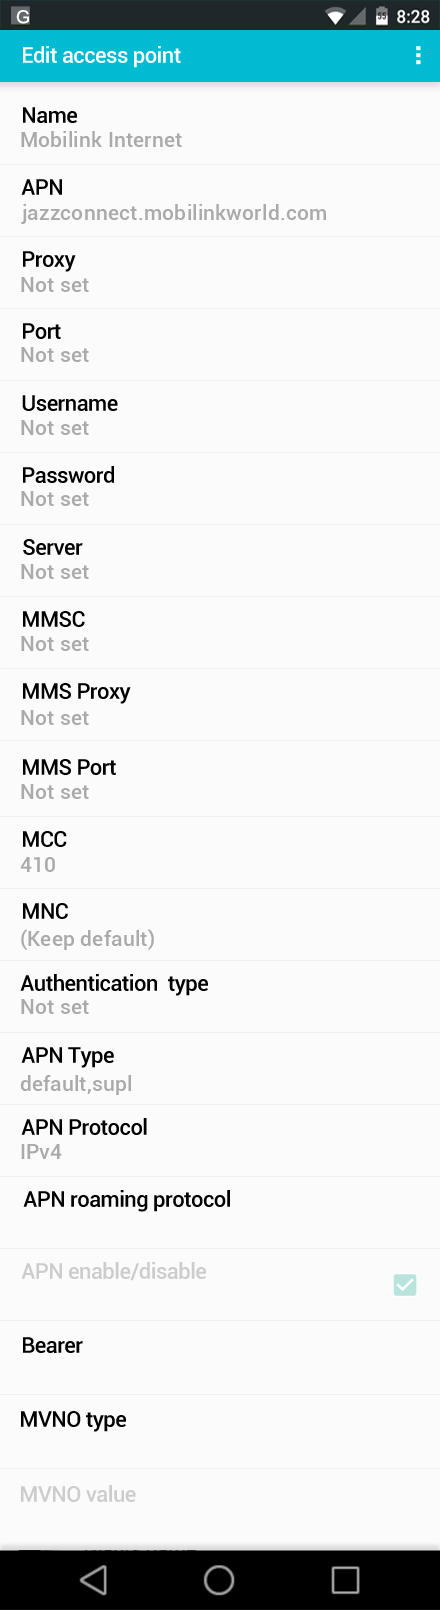 Mobilink Internet APN settings for Android